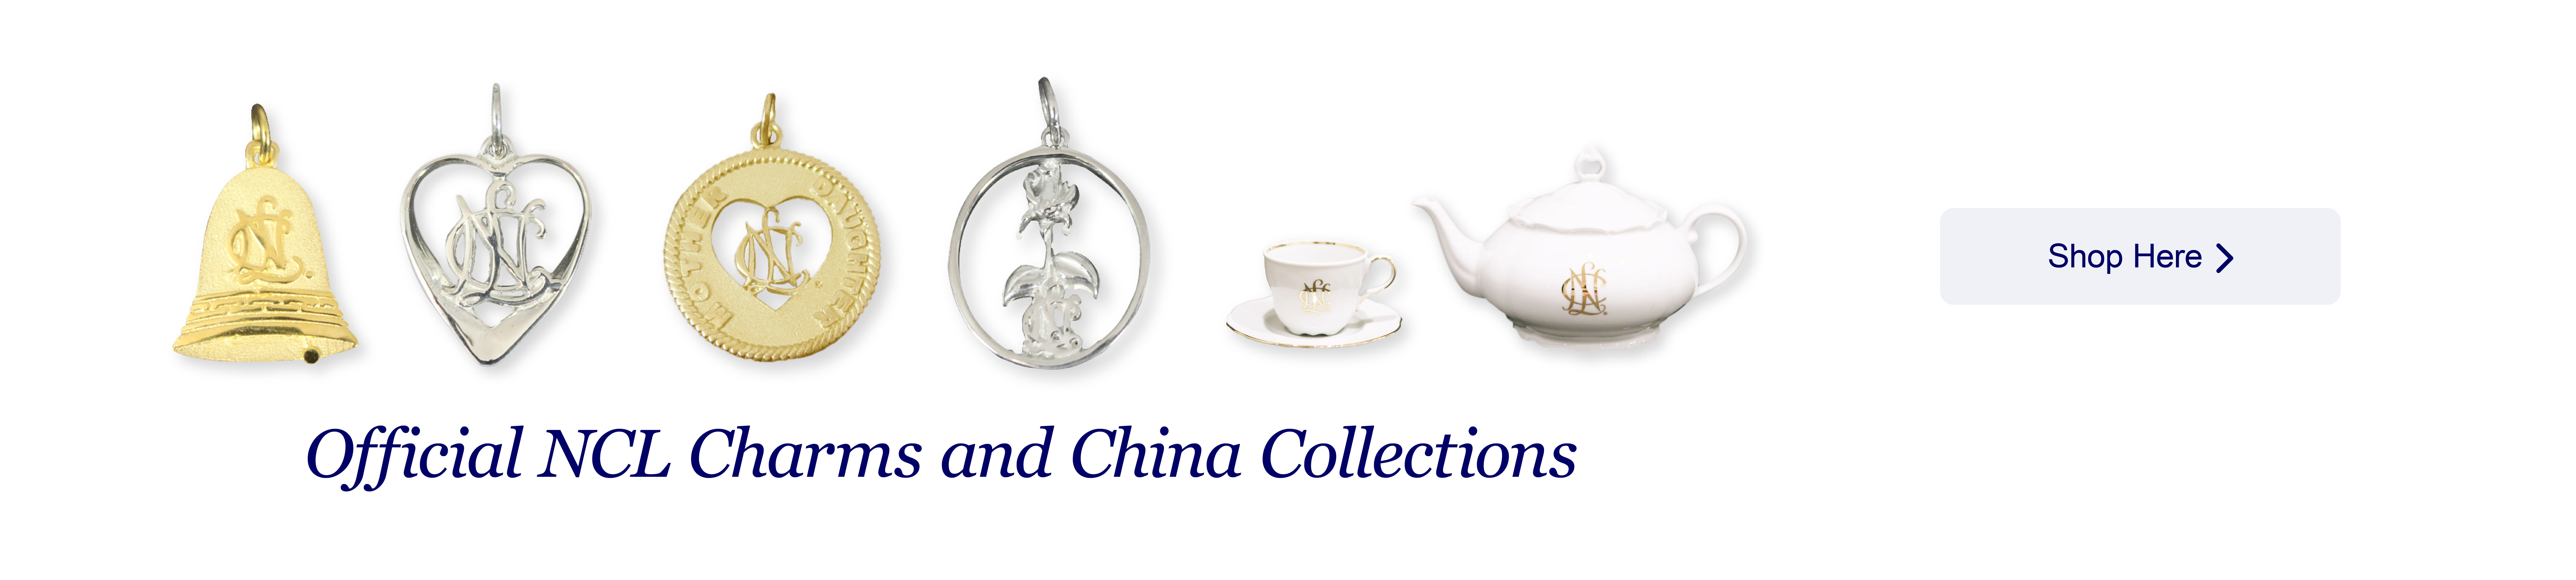 Official NCL Charms and China Collections